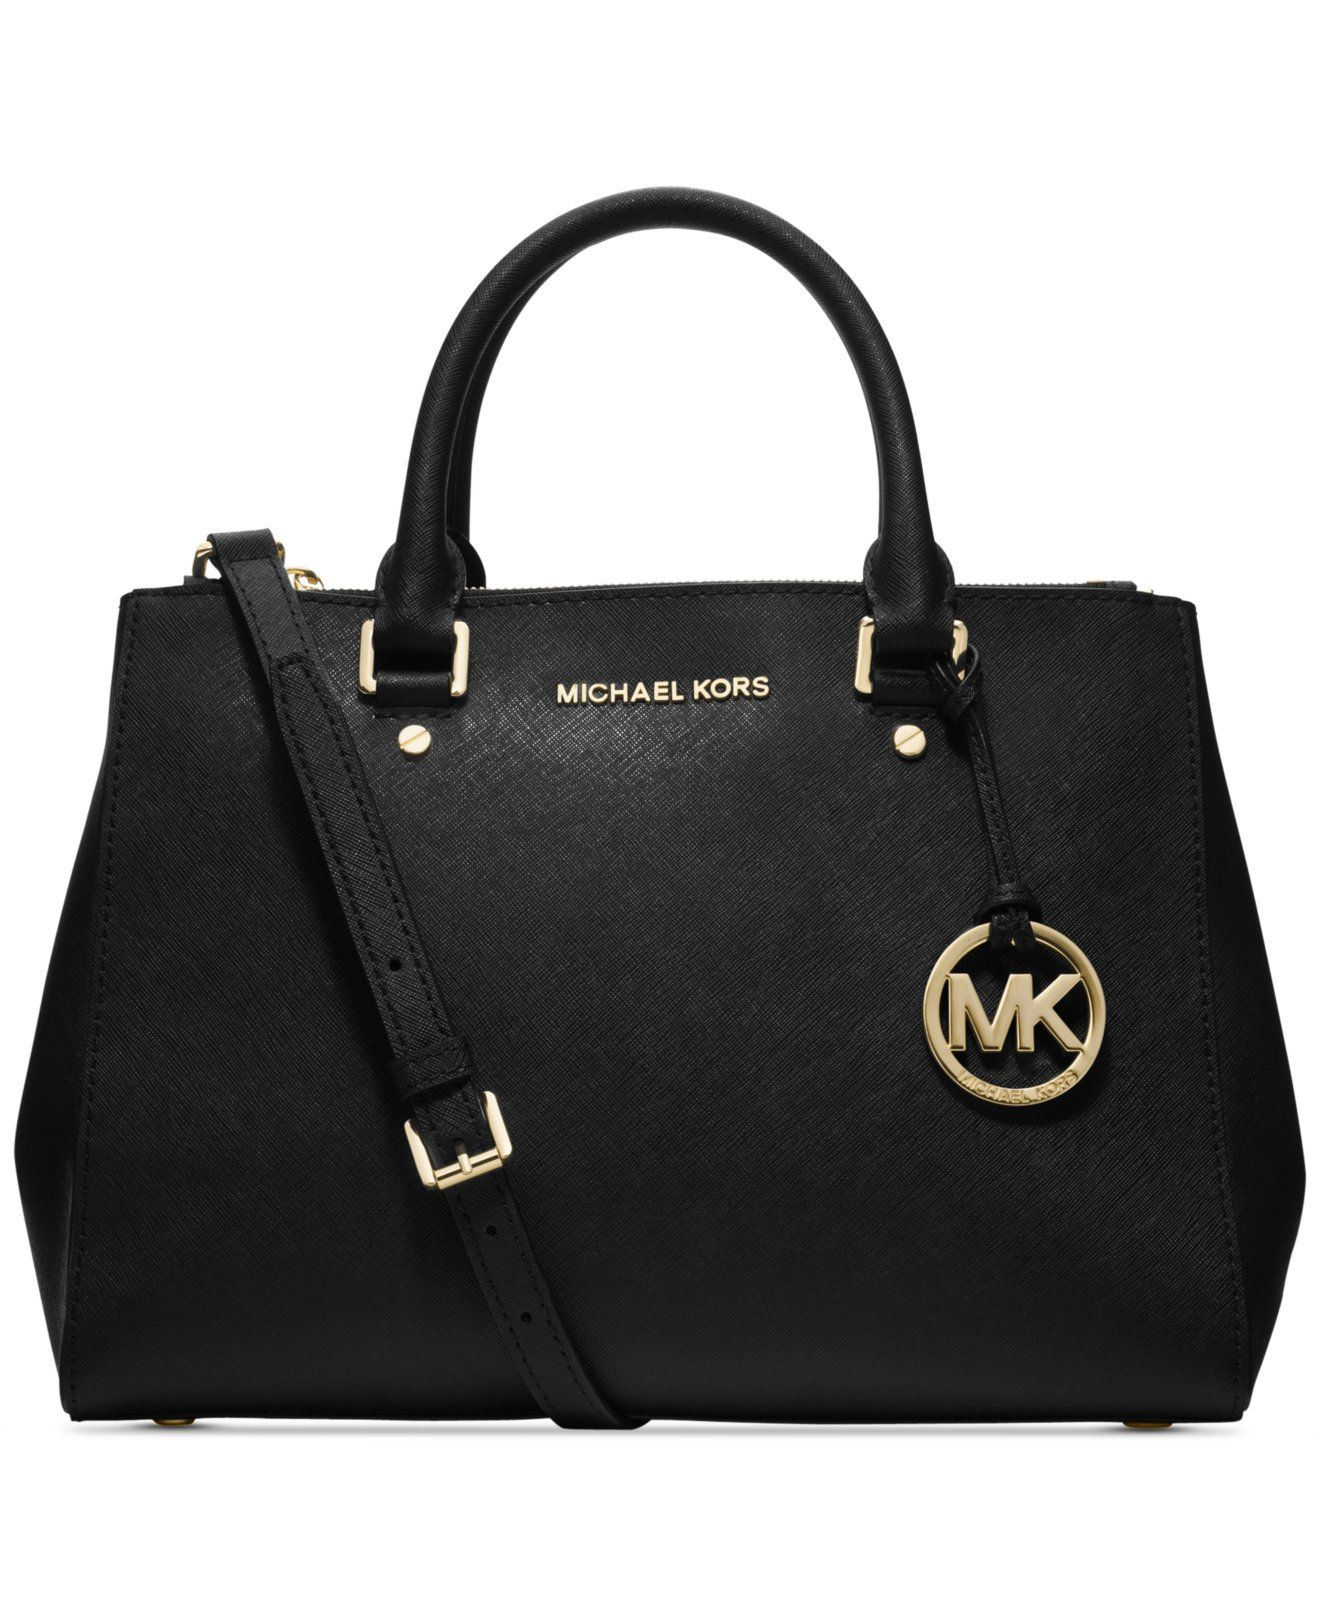 MICHAEL Michael Kors Sutton Medium Satchel - Handbags \u0026 Accessories - Macy\u0027s  $328